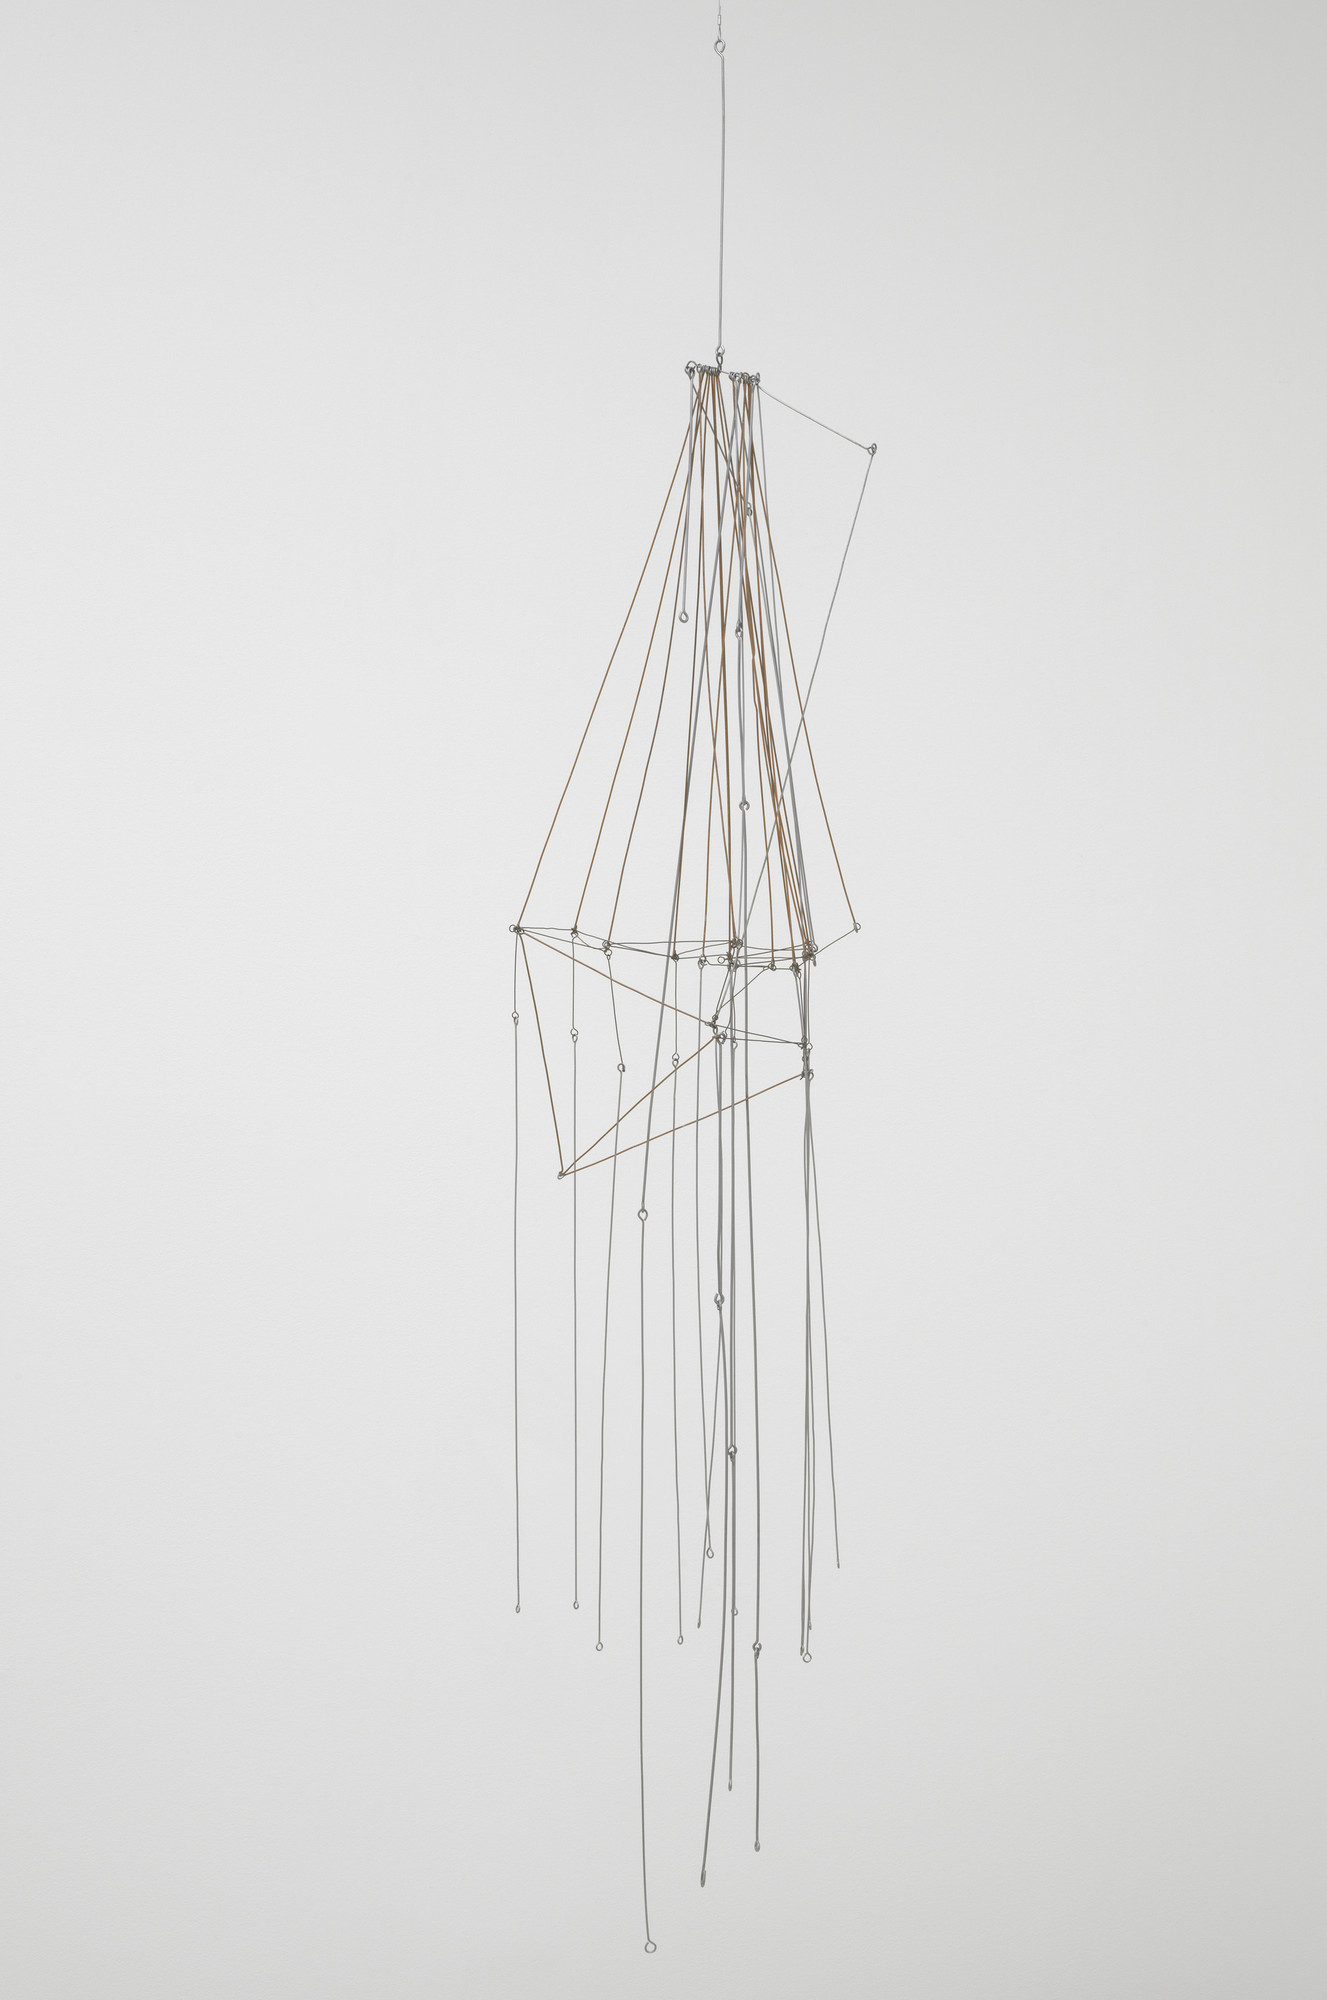 "Gego (Gertrud Goldschmidt). Stream no. 7. Chorro no. 7. 1971. Iron and aluminum, 86 × 16 × 16"" (218.5 × 40.7 × 40.7 cm). Promised gift of Patricia Phelps de Cisneros through the Latin American and Caribbean Fund in honor of Susan and Glenn Lowry. © 2018 Fundación Gego"